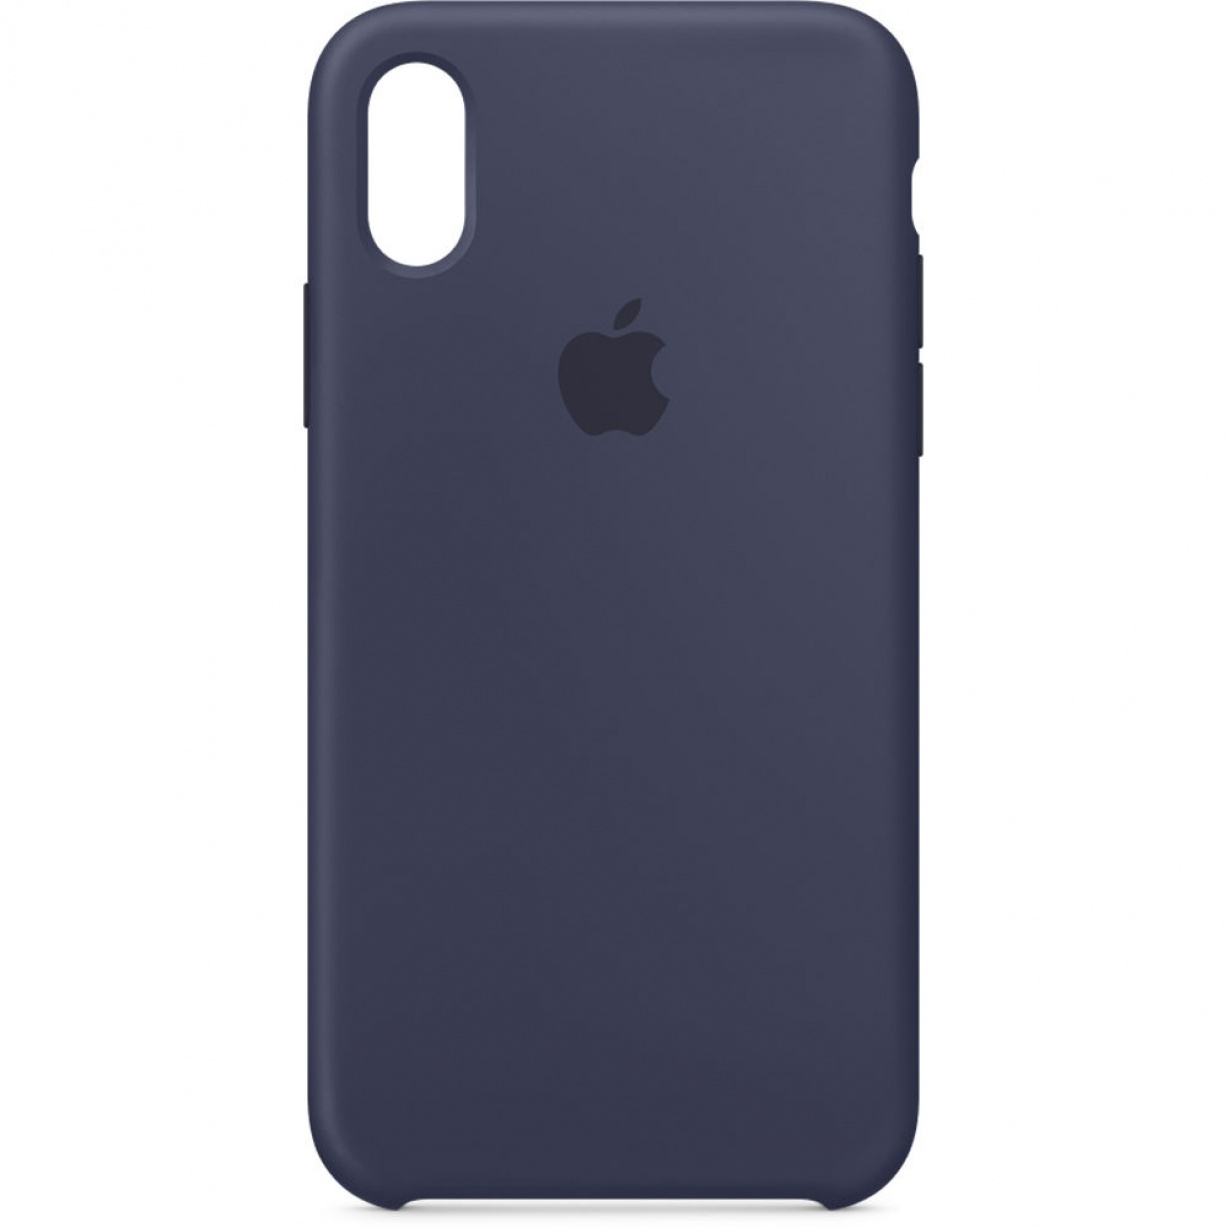 Nugarėlė Apple iPhone X Silicone Case Midnight Blue